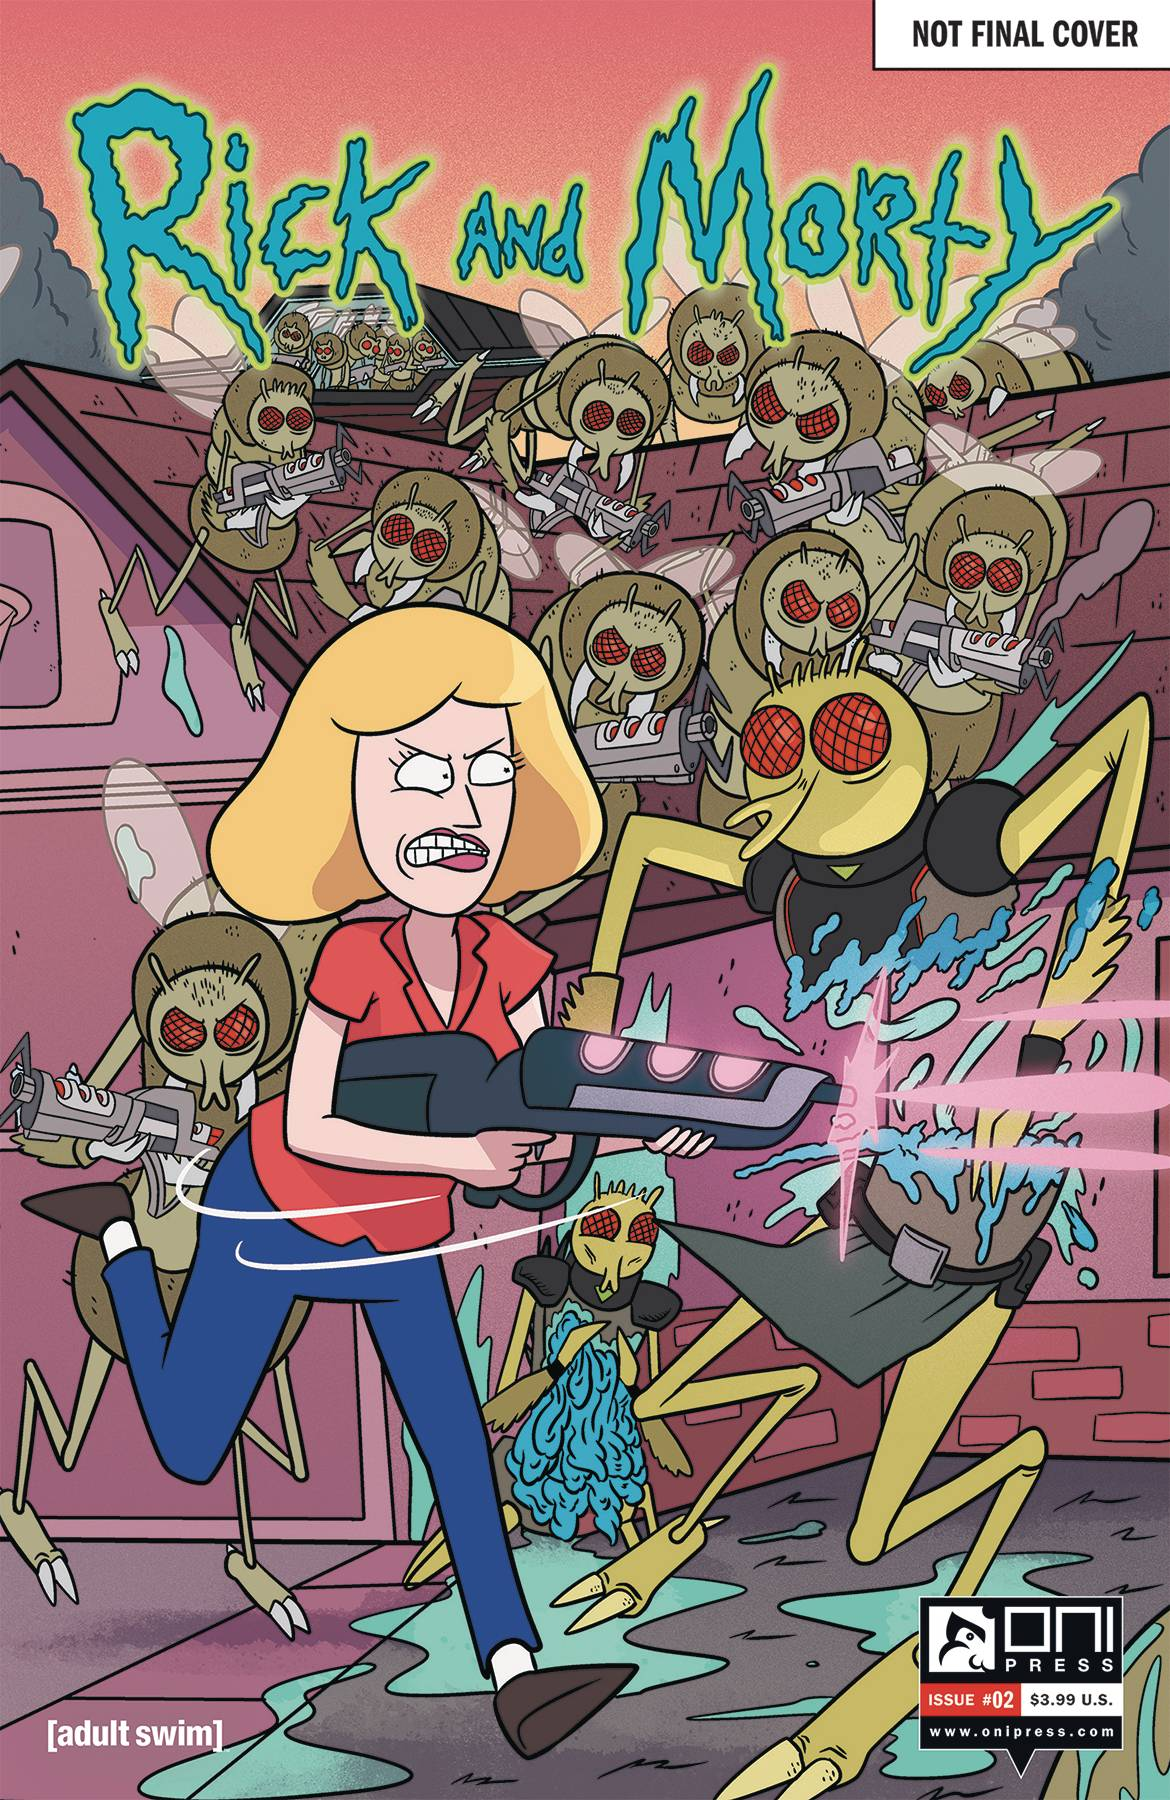 RICK & MORTY 2 50 ISSUES SPECIAL VAR.jpg